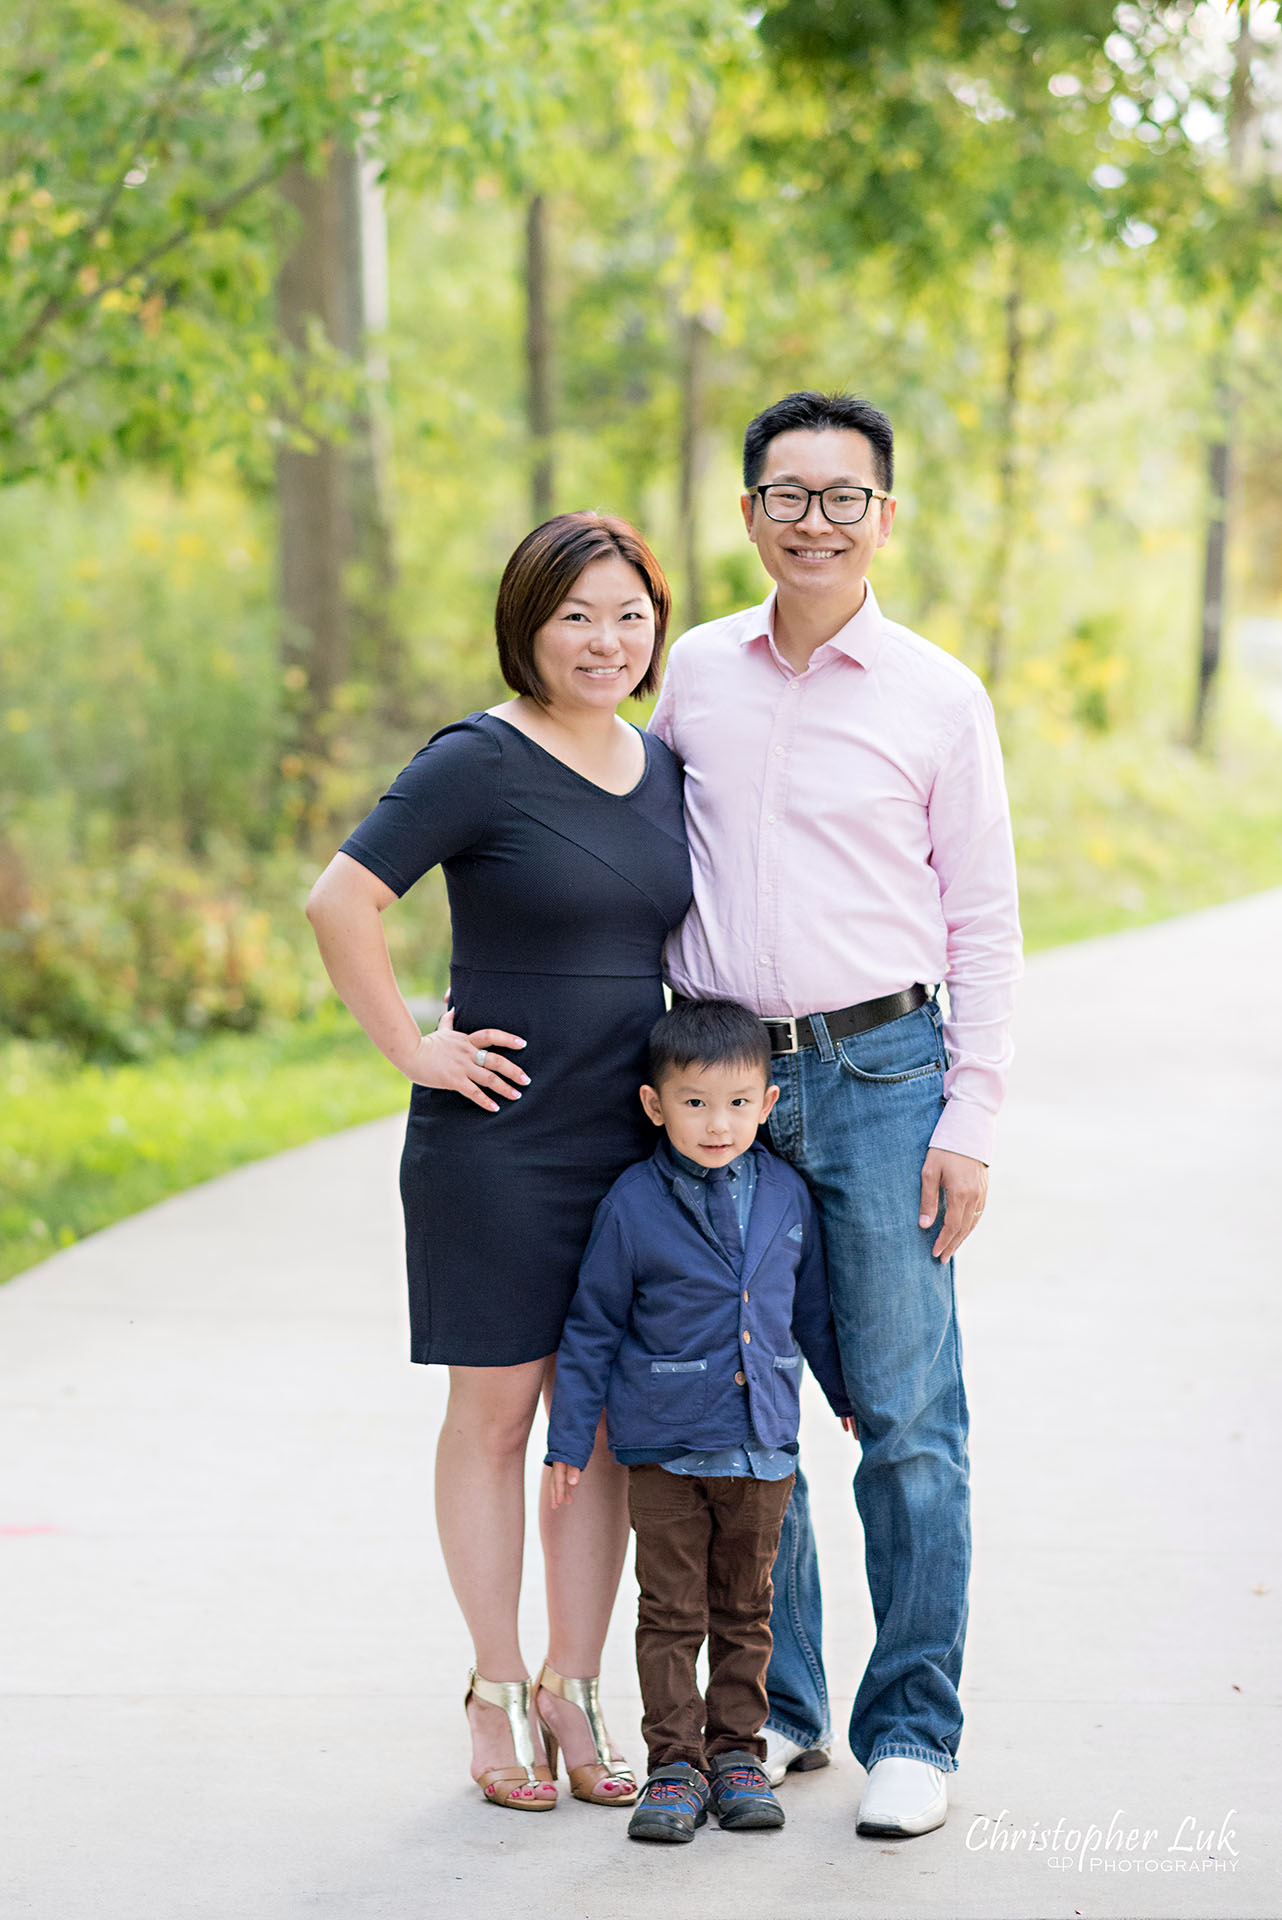 Christopher Luk Toronto Photographer Lake Wilcox Park Family Baby Newborn Richmond Hill Session Mother Mom Father Dad Husband Wife Son Brother